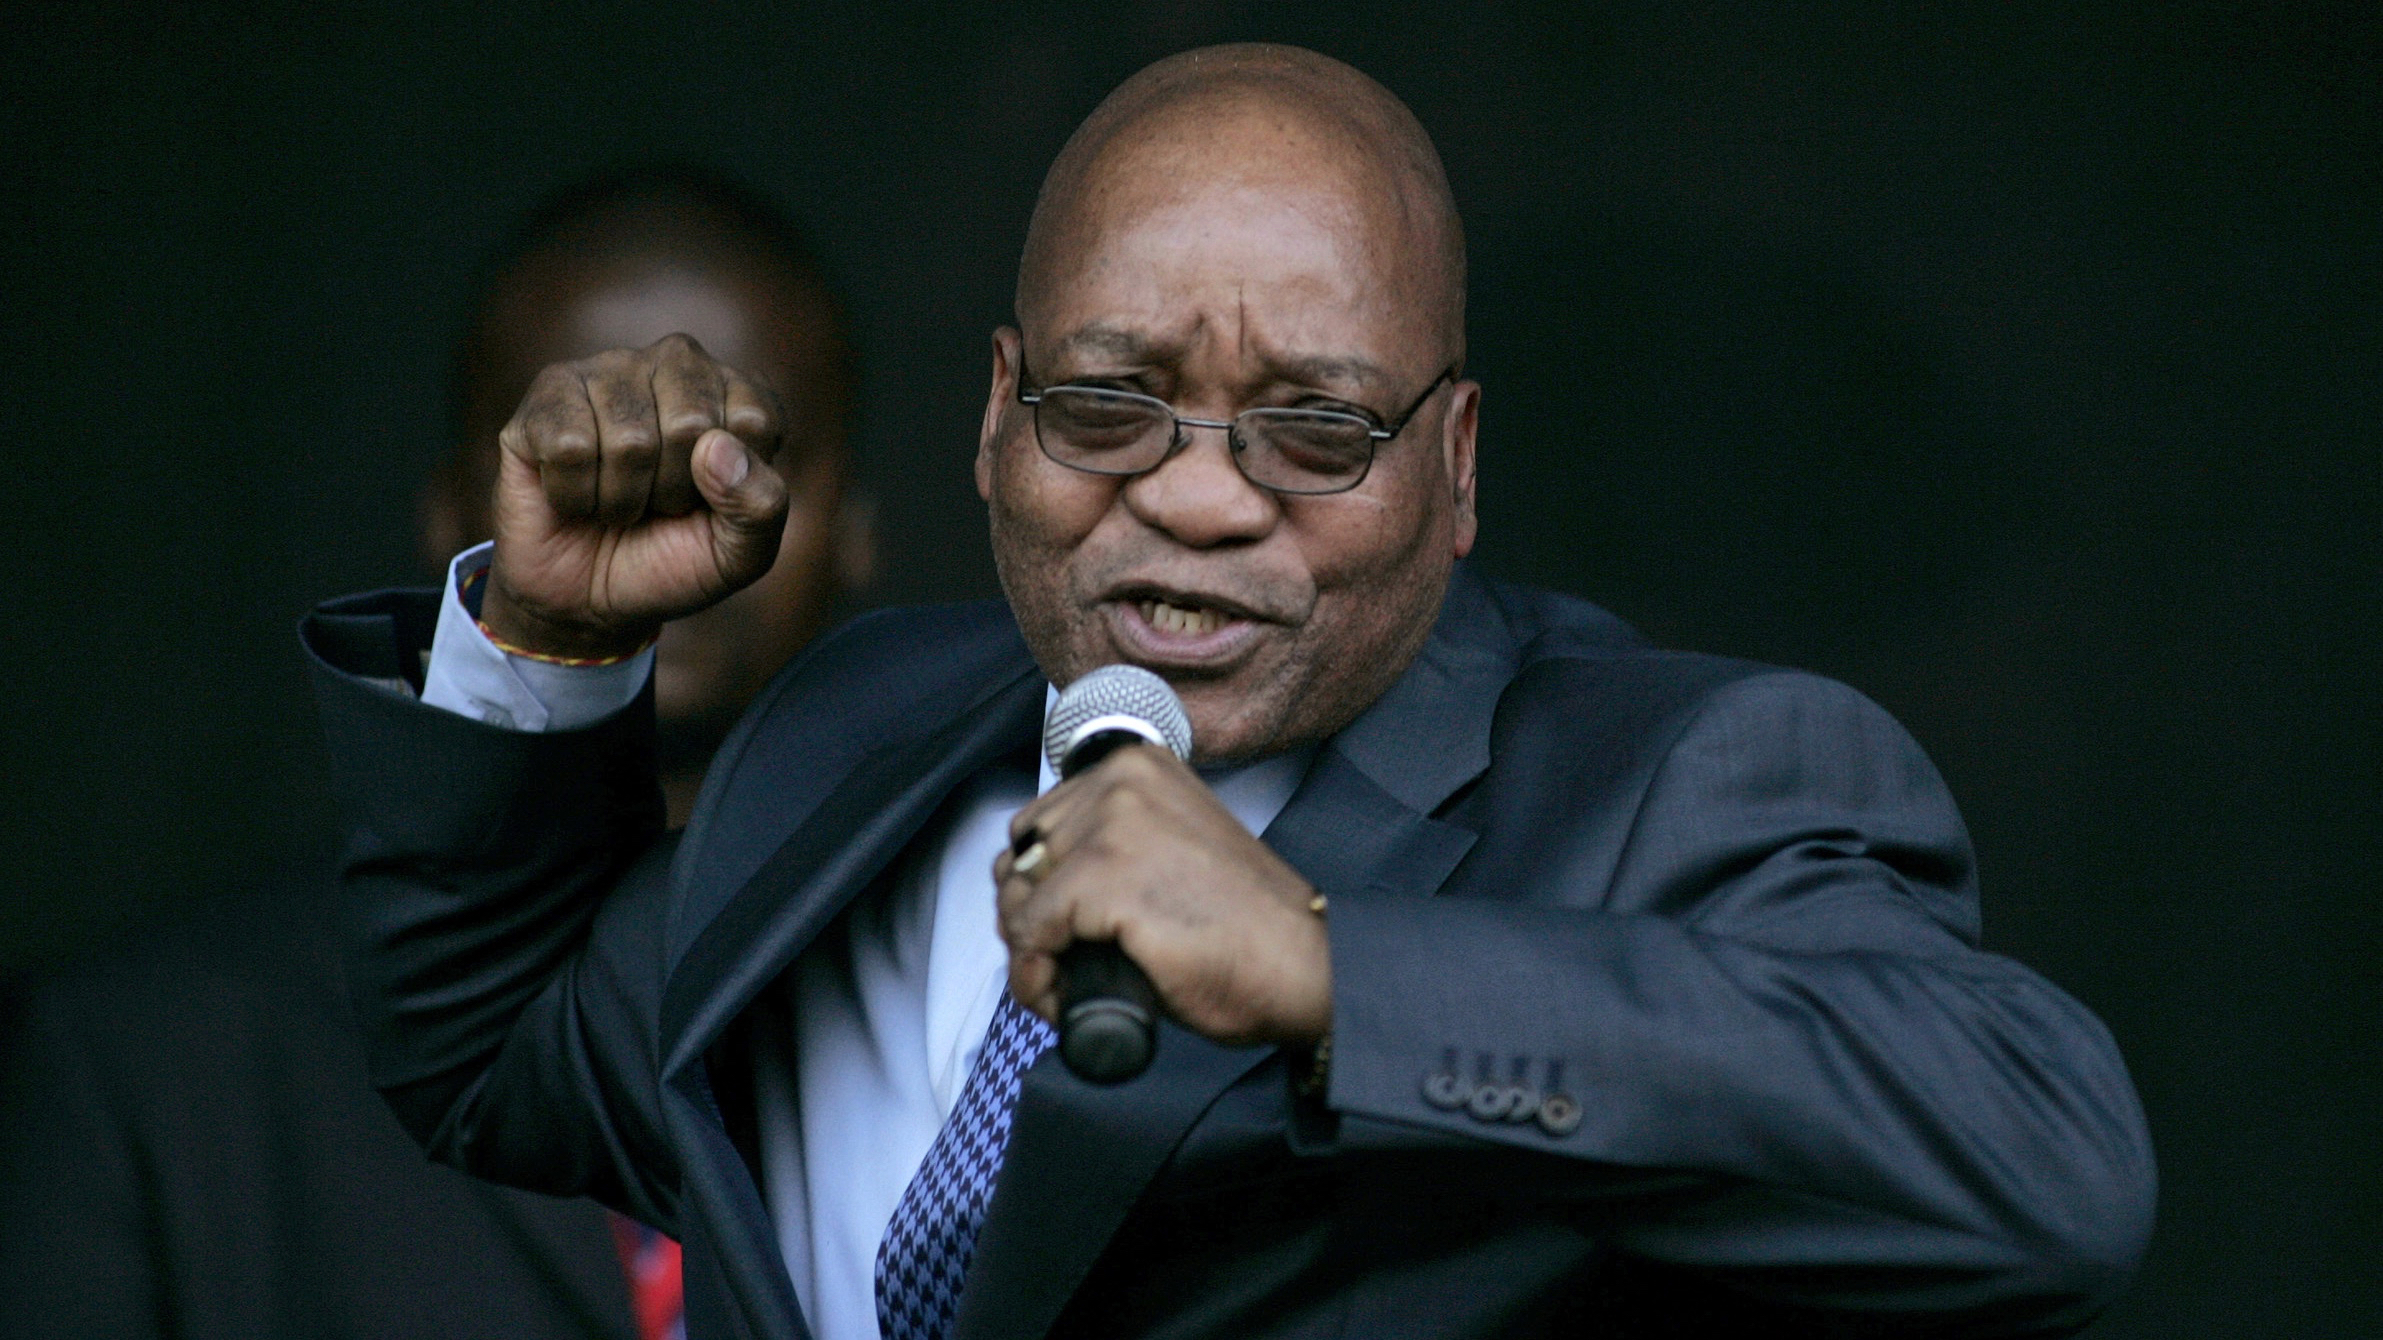 Jacob Zuma, leader of South Africa's ruling African National Congress (ANC), sings for his supporters at the Pietermaritzburg high court outside Durban August 4, 2008. Zuma appeared in court on Monday to push for the dismissal of a corruption case that could stop him becoming president next year. Over 1,000 supporters demonstrated outside the high court in Pietermaritzburg to denounce charges they say are politically motivated and to try to stop Zuma from being put on trial later in the year. REUTERS/Siphiwe Sibeko (SOUTH AFRICA) - RTR20MBW